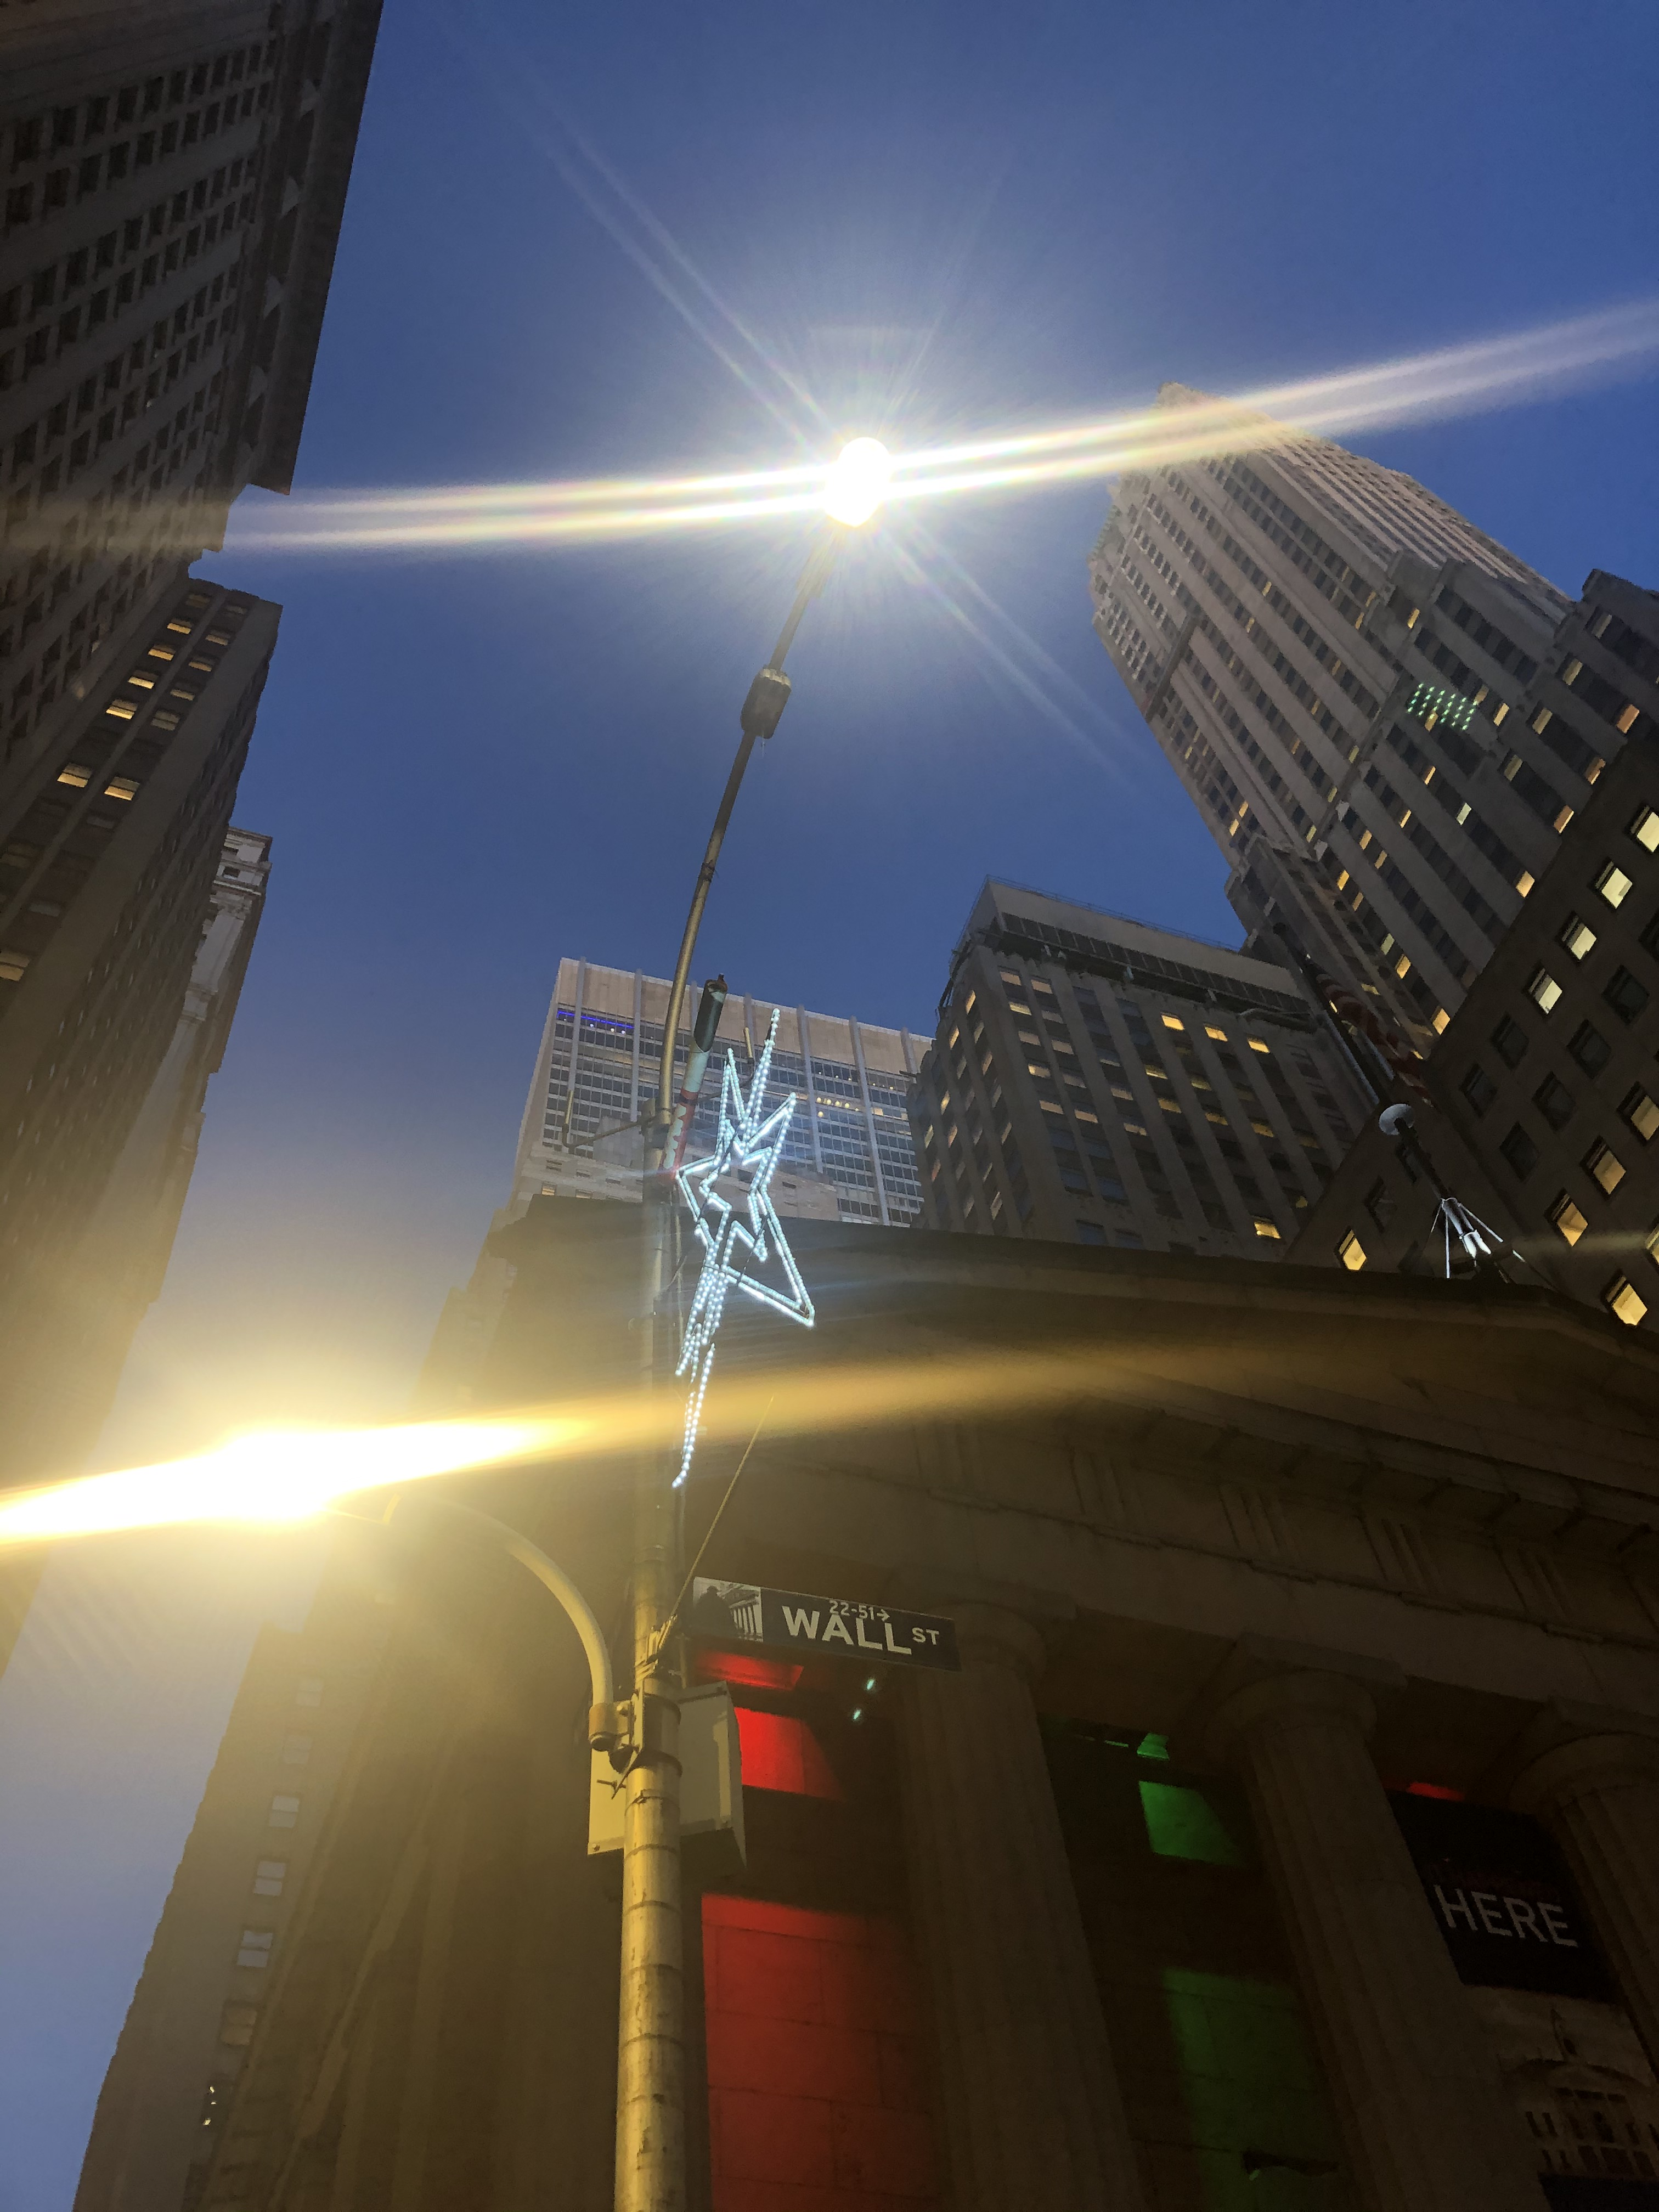 Star-shaped Christmas lights attached to a light pole near a Wall Street street sign